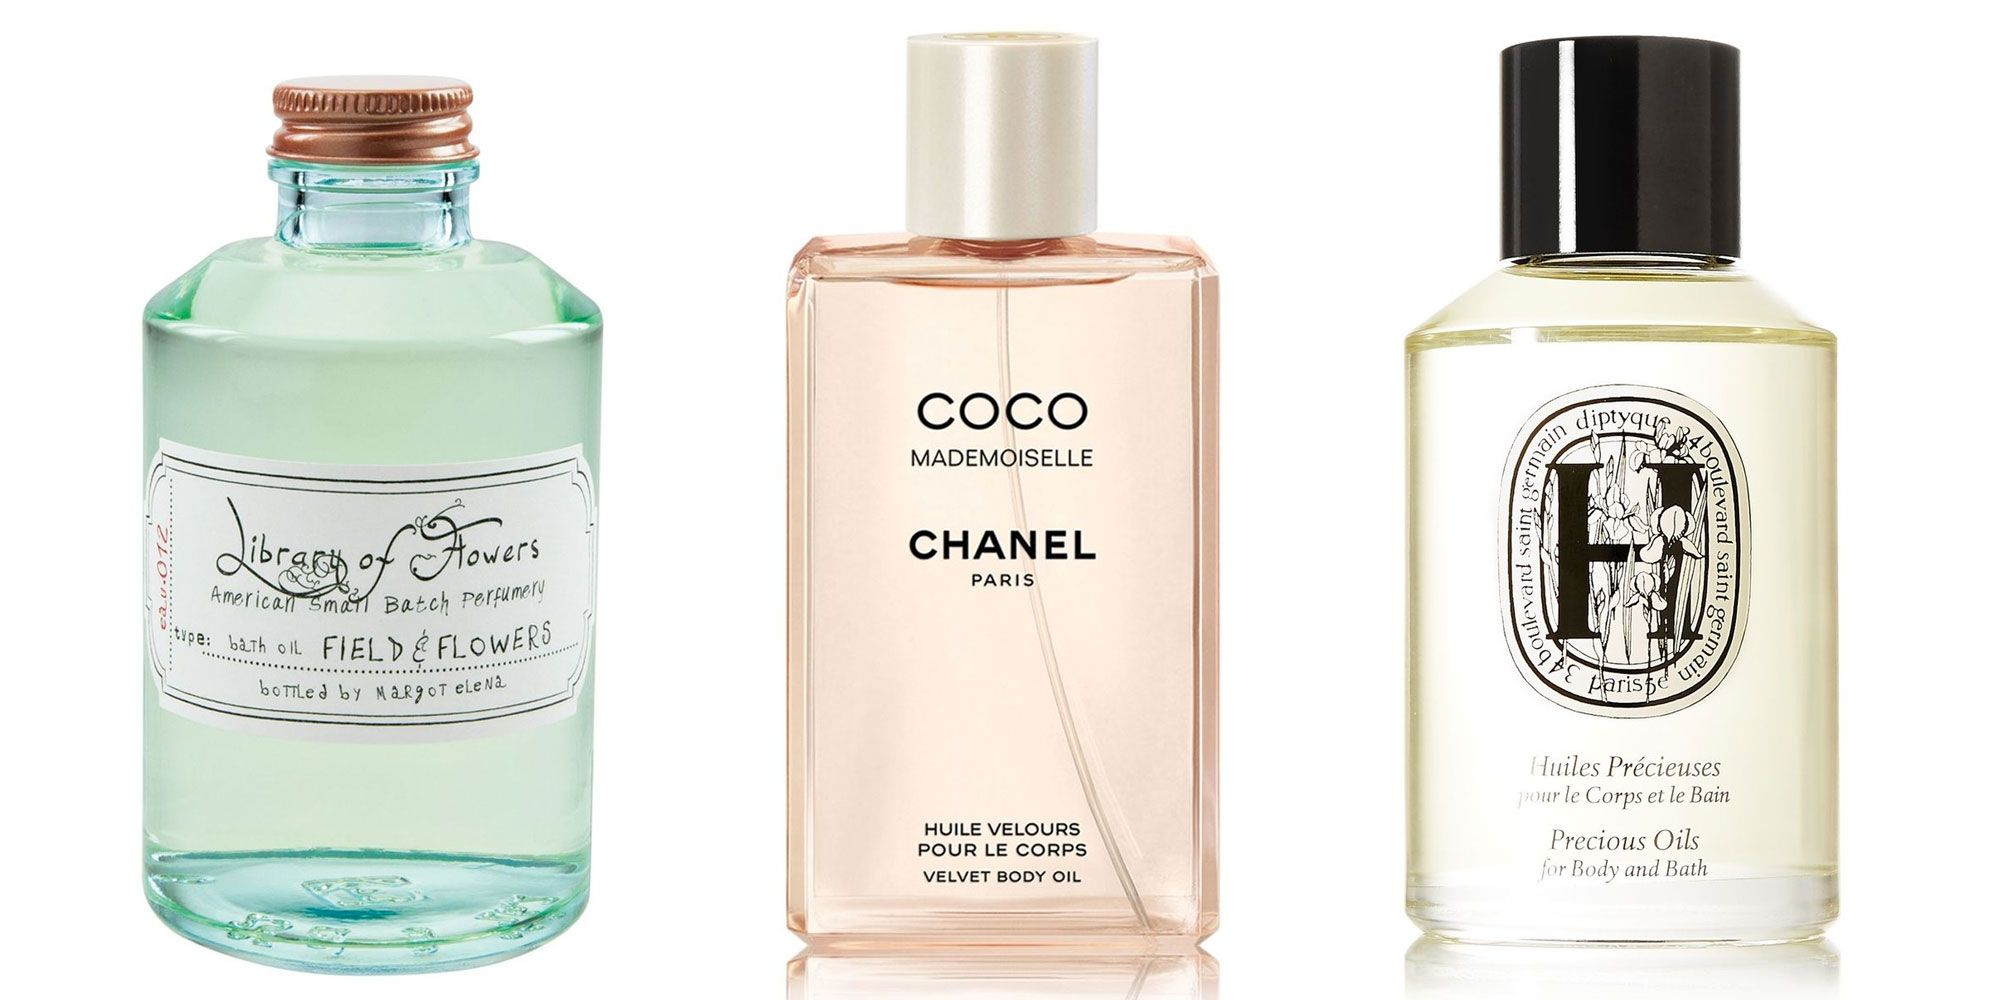 12 Best Bath Oils for 2018 - Top Luxury Bath Products for Smooth Skin